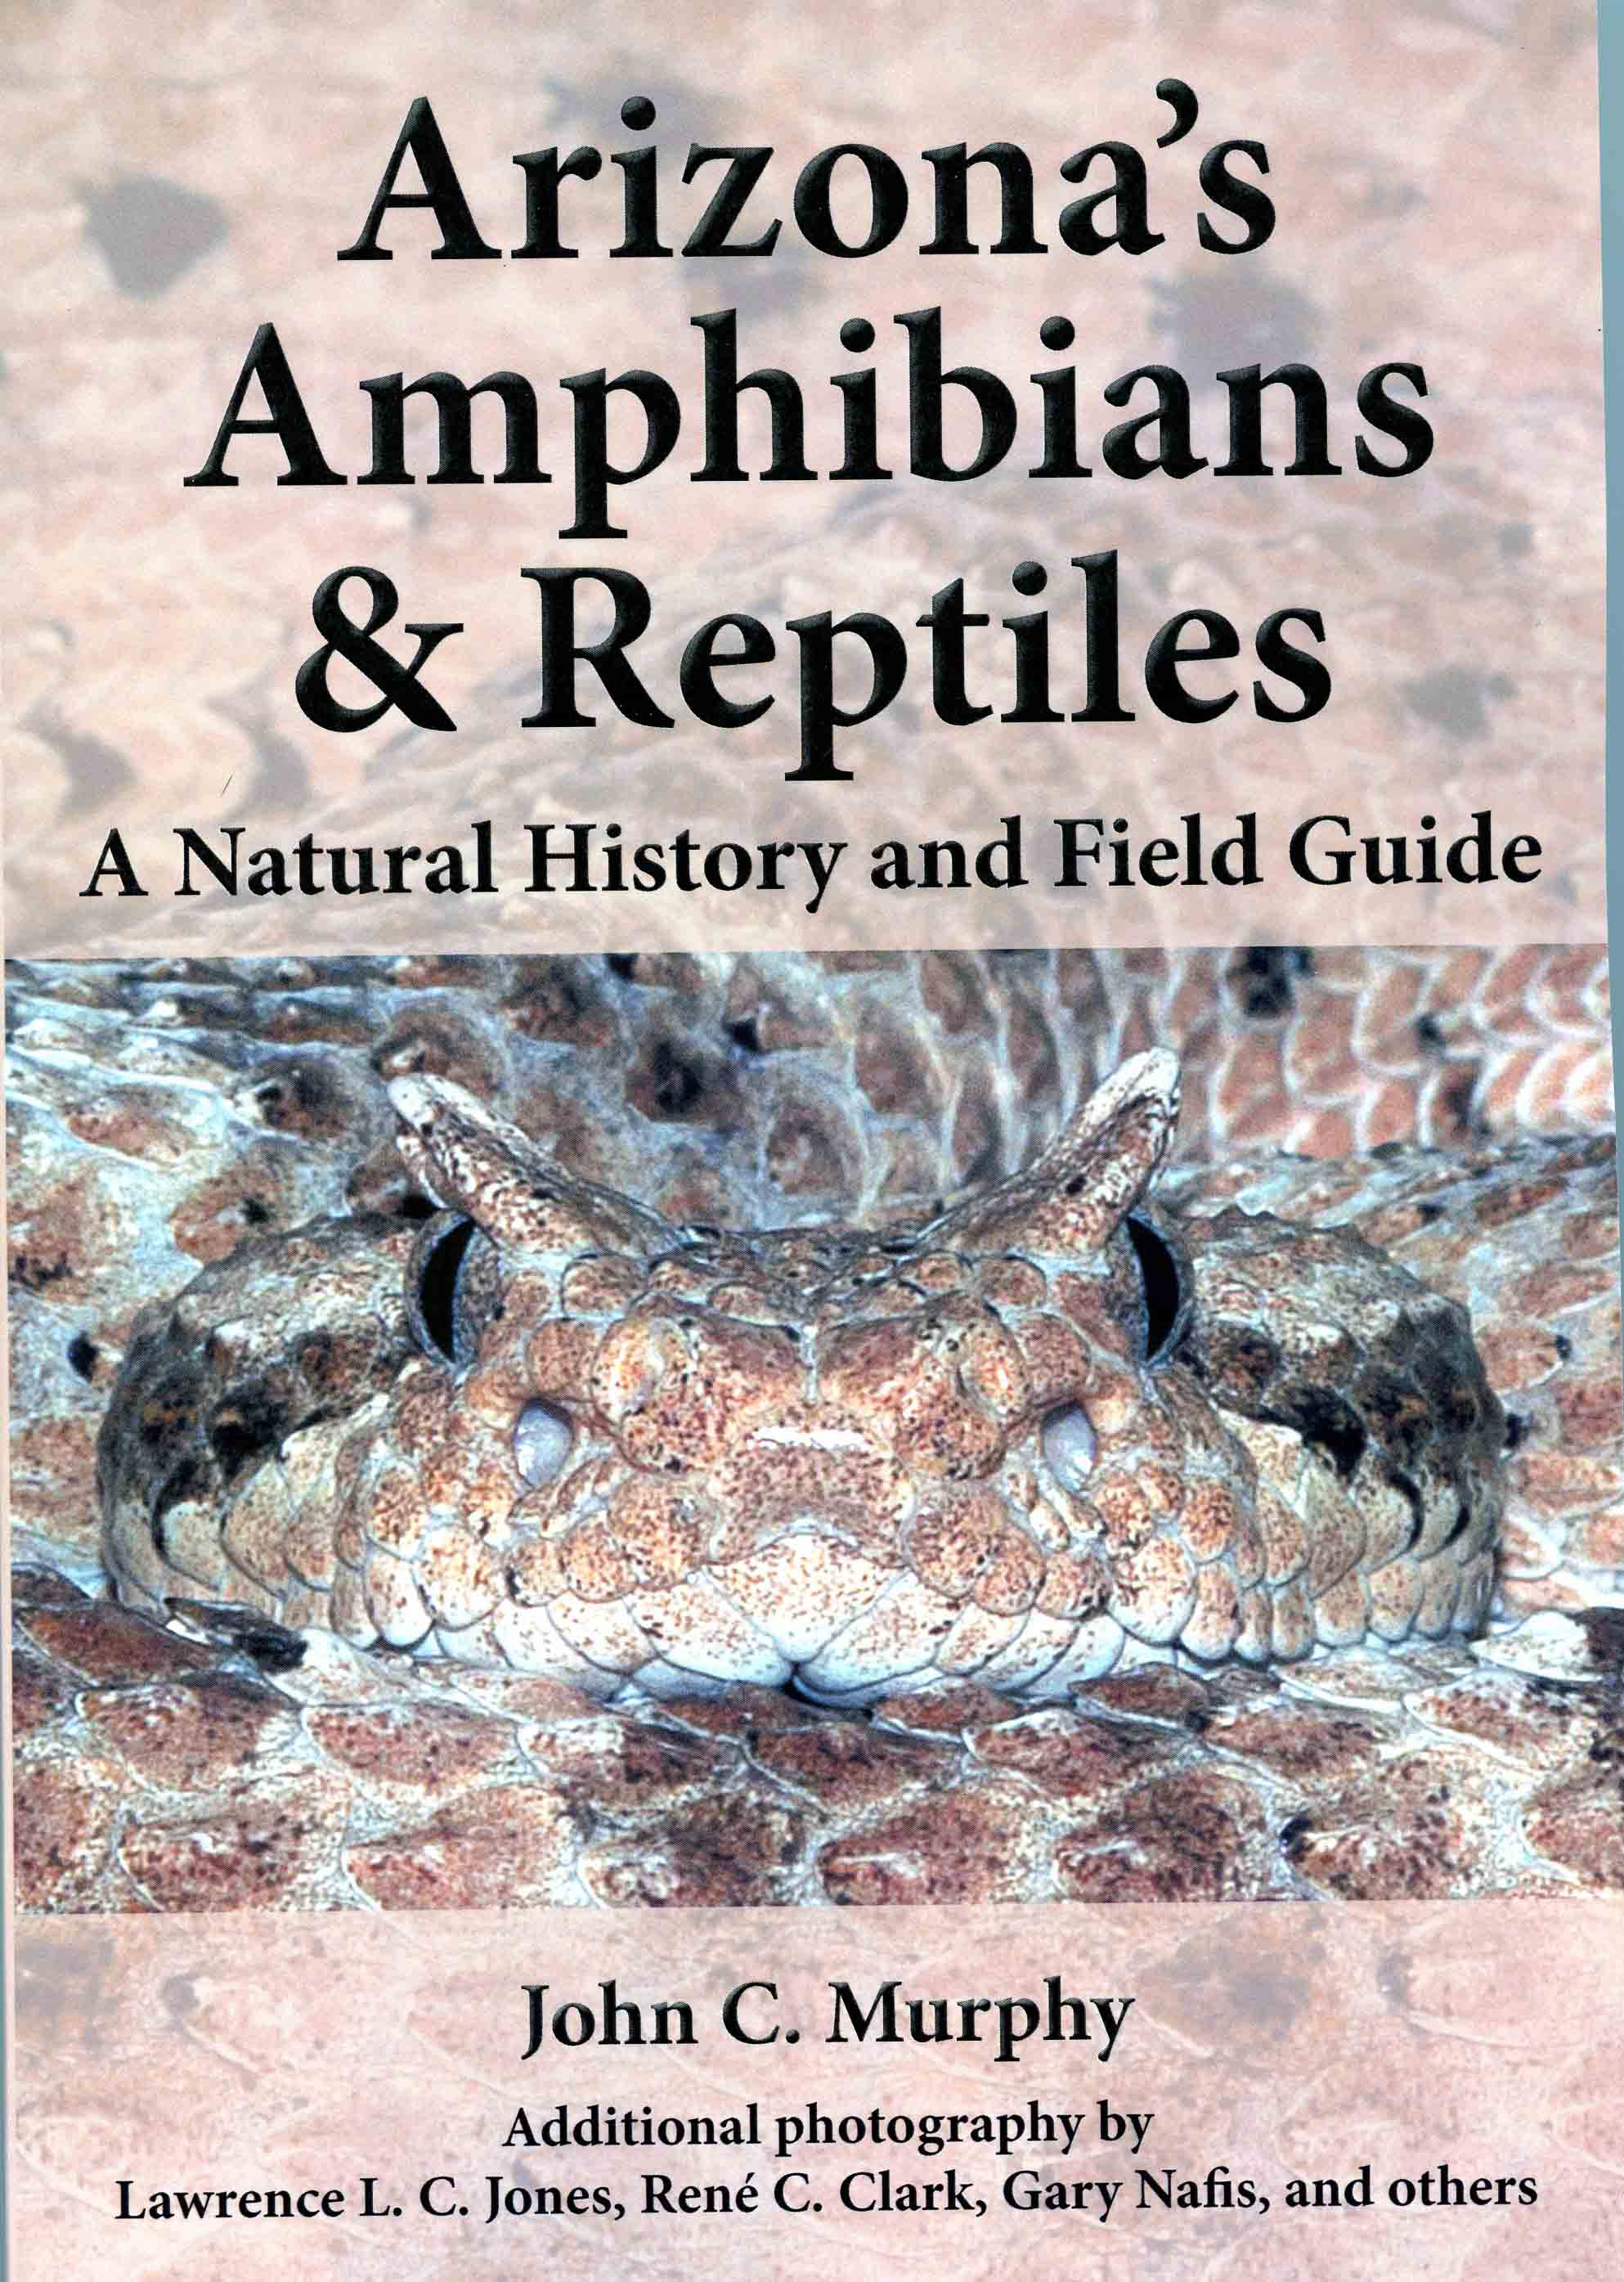 Image for Arizona's Amphibians & Reptiles: A Natural History and Field Guide,